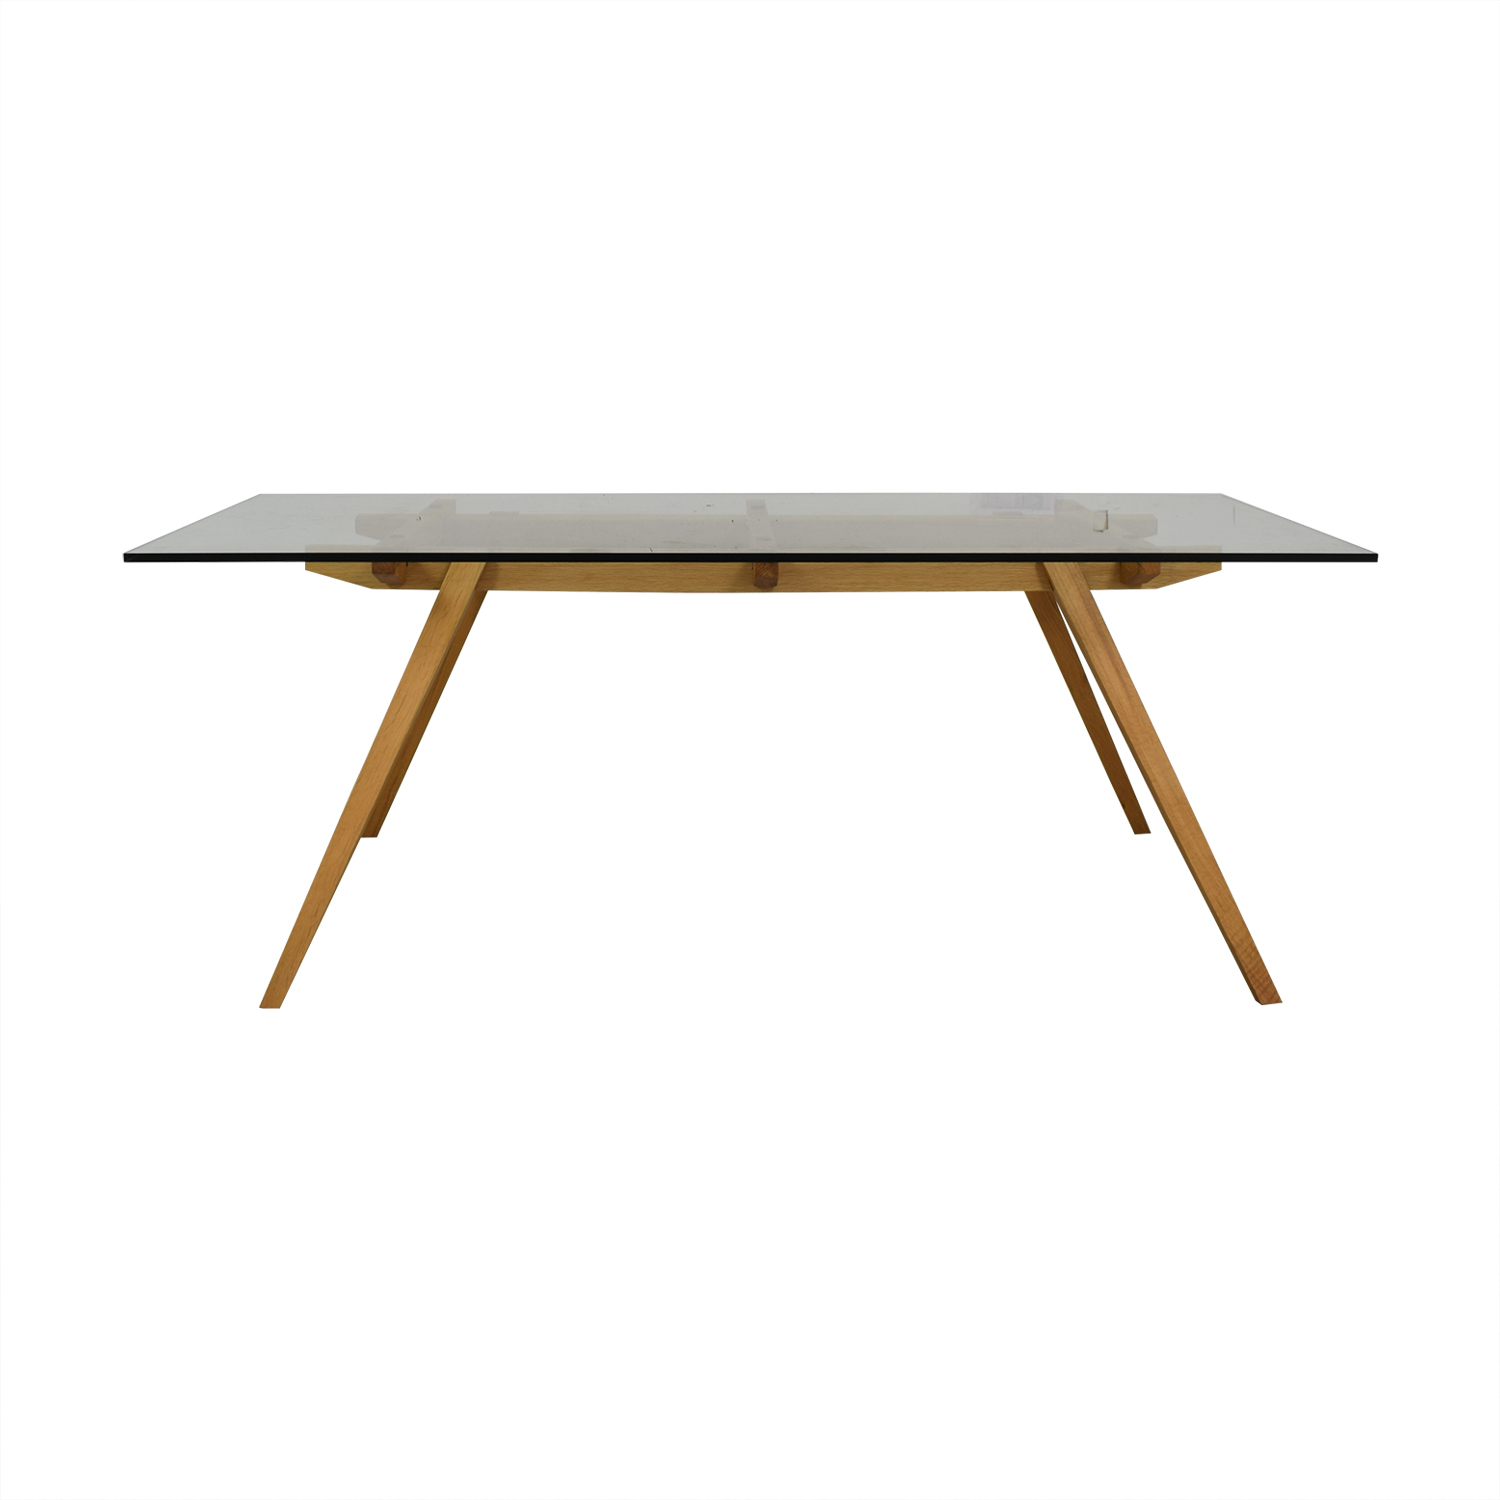 Organic Modernism Organic Modernism Recoleta Glass and Wood Dining Table nj